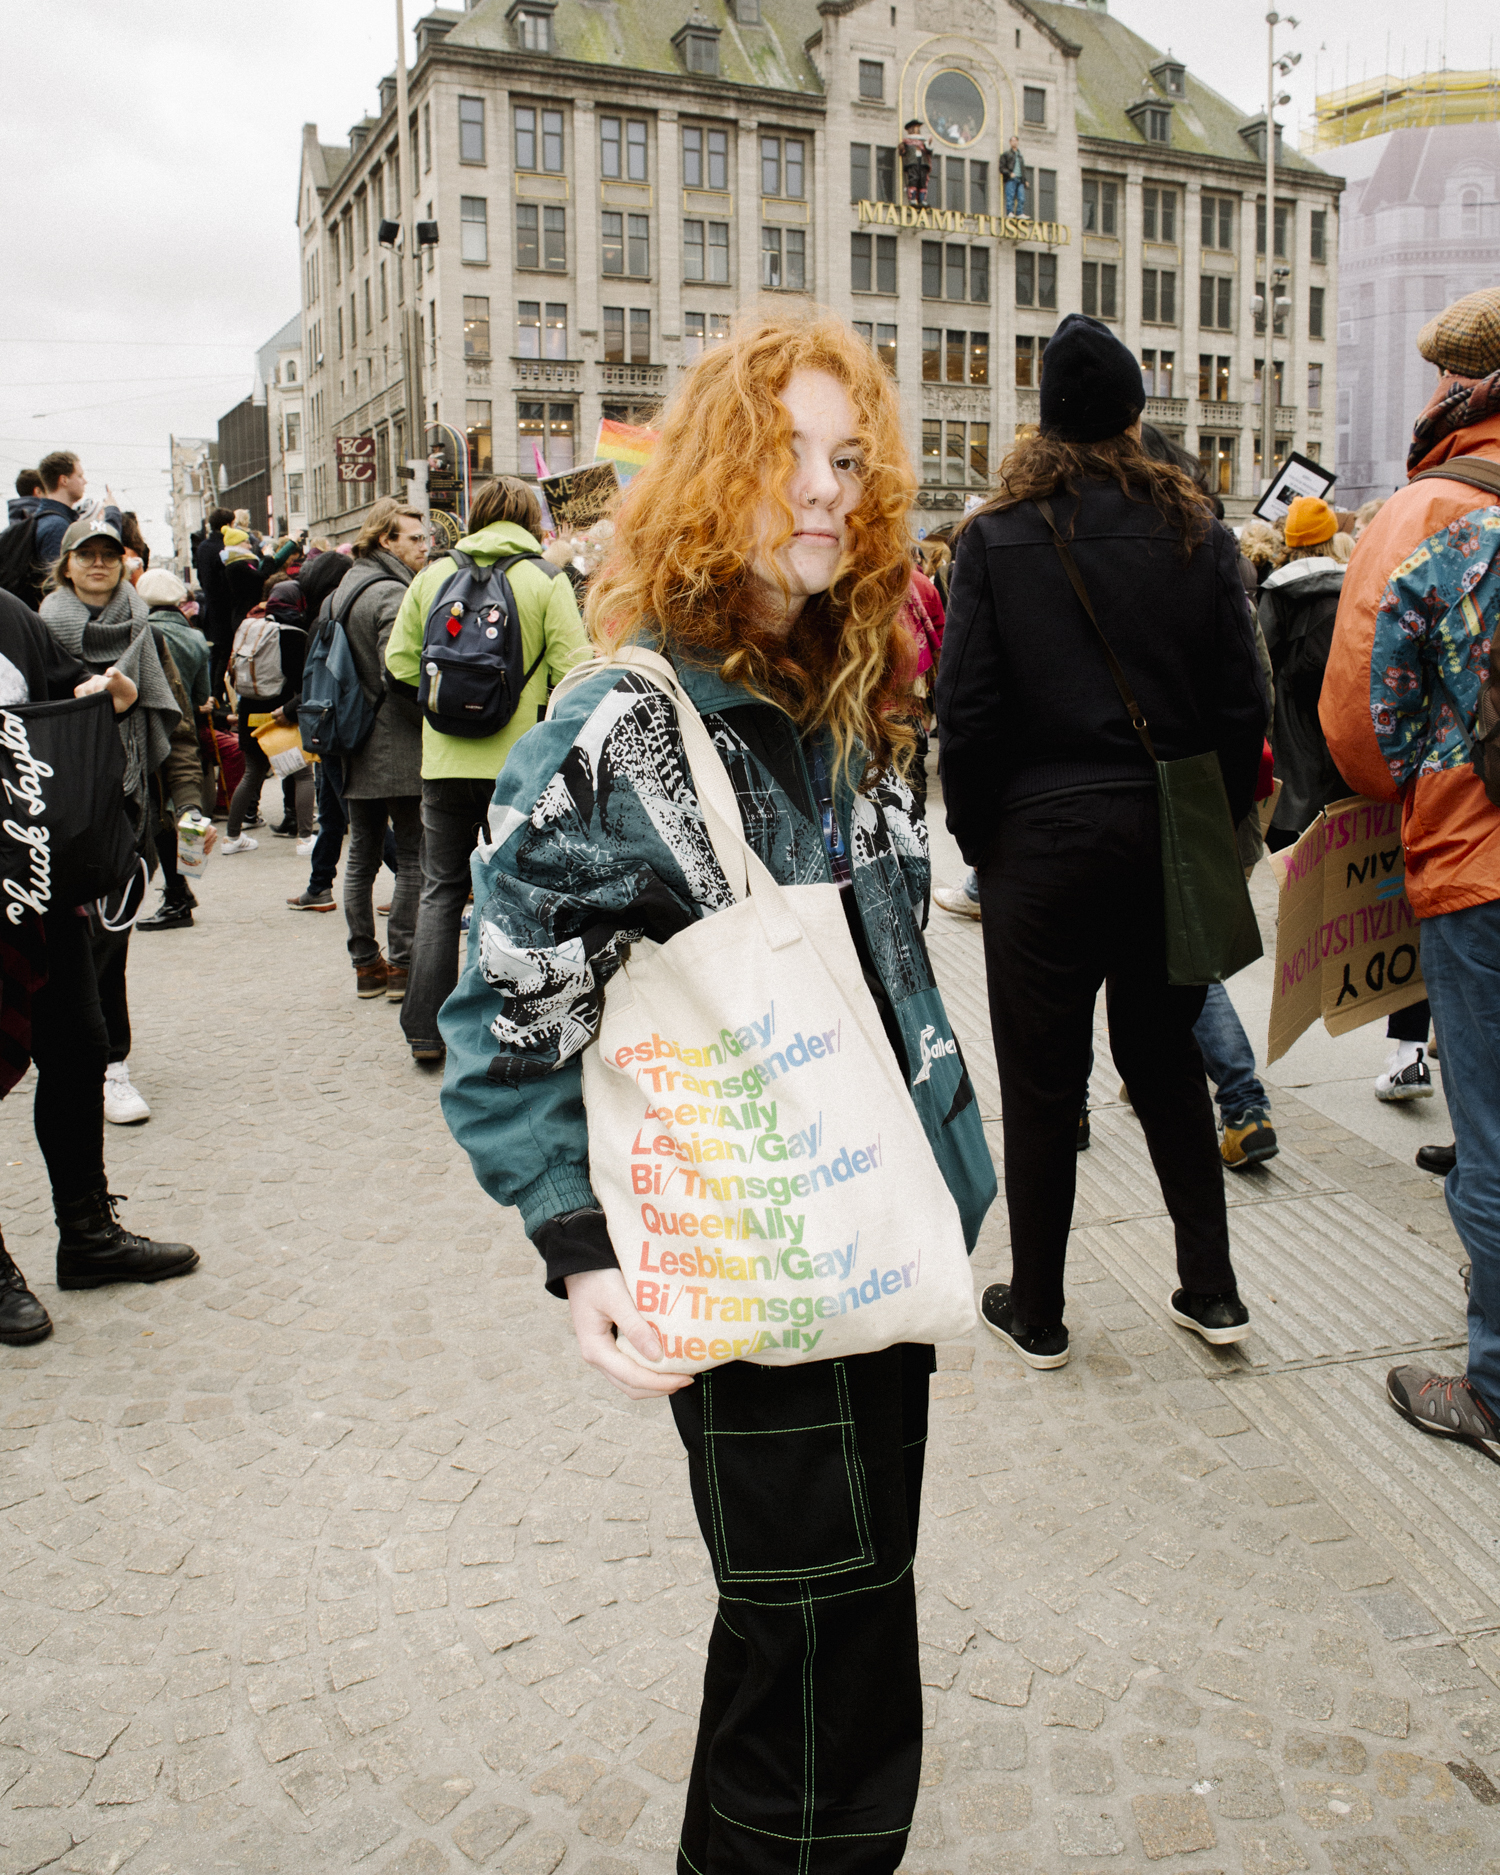 Myrthe_WomensMarch_i-D_2019__87A9326.jpg